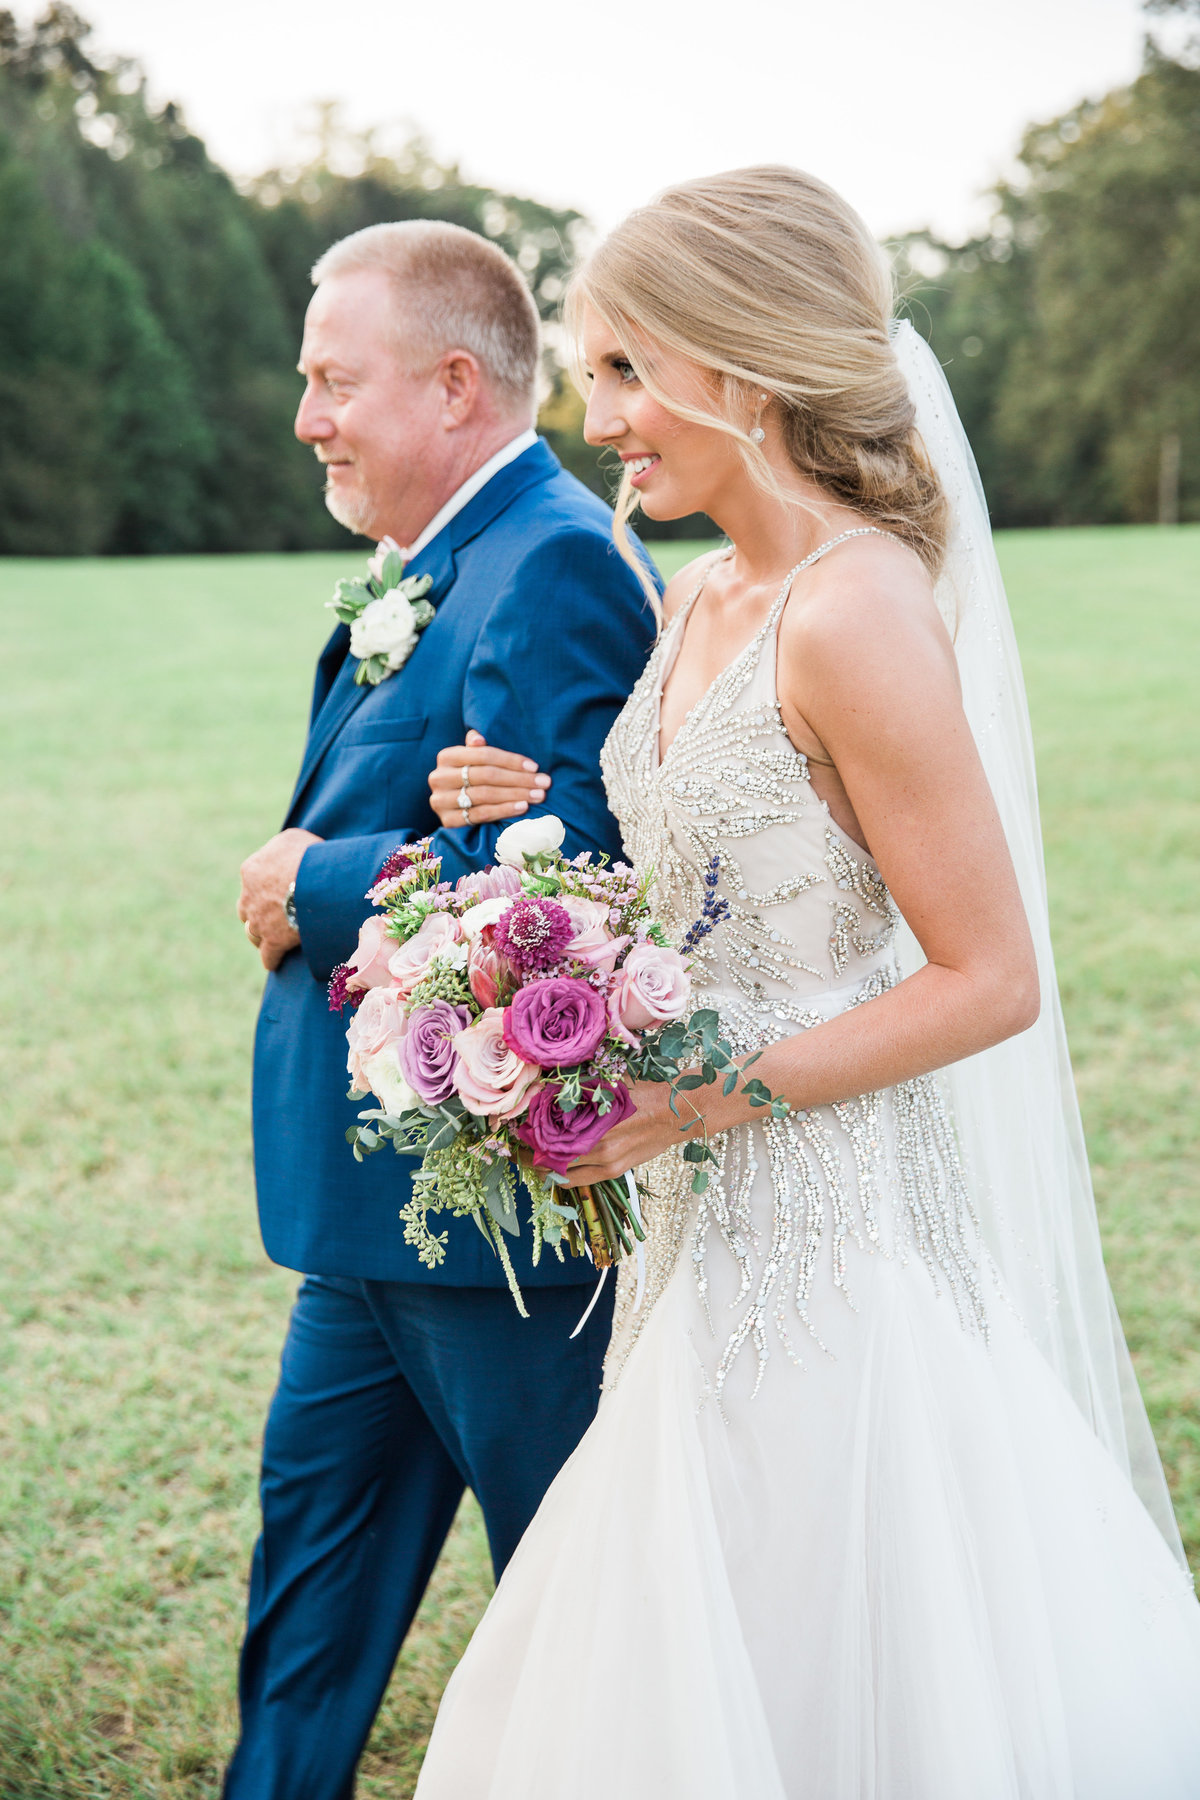 Eden & Will Wedding_Lindsay Ott Photography_Mississippi Wedding Photographer61